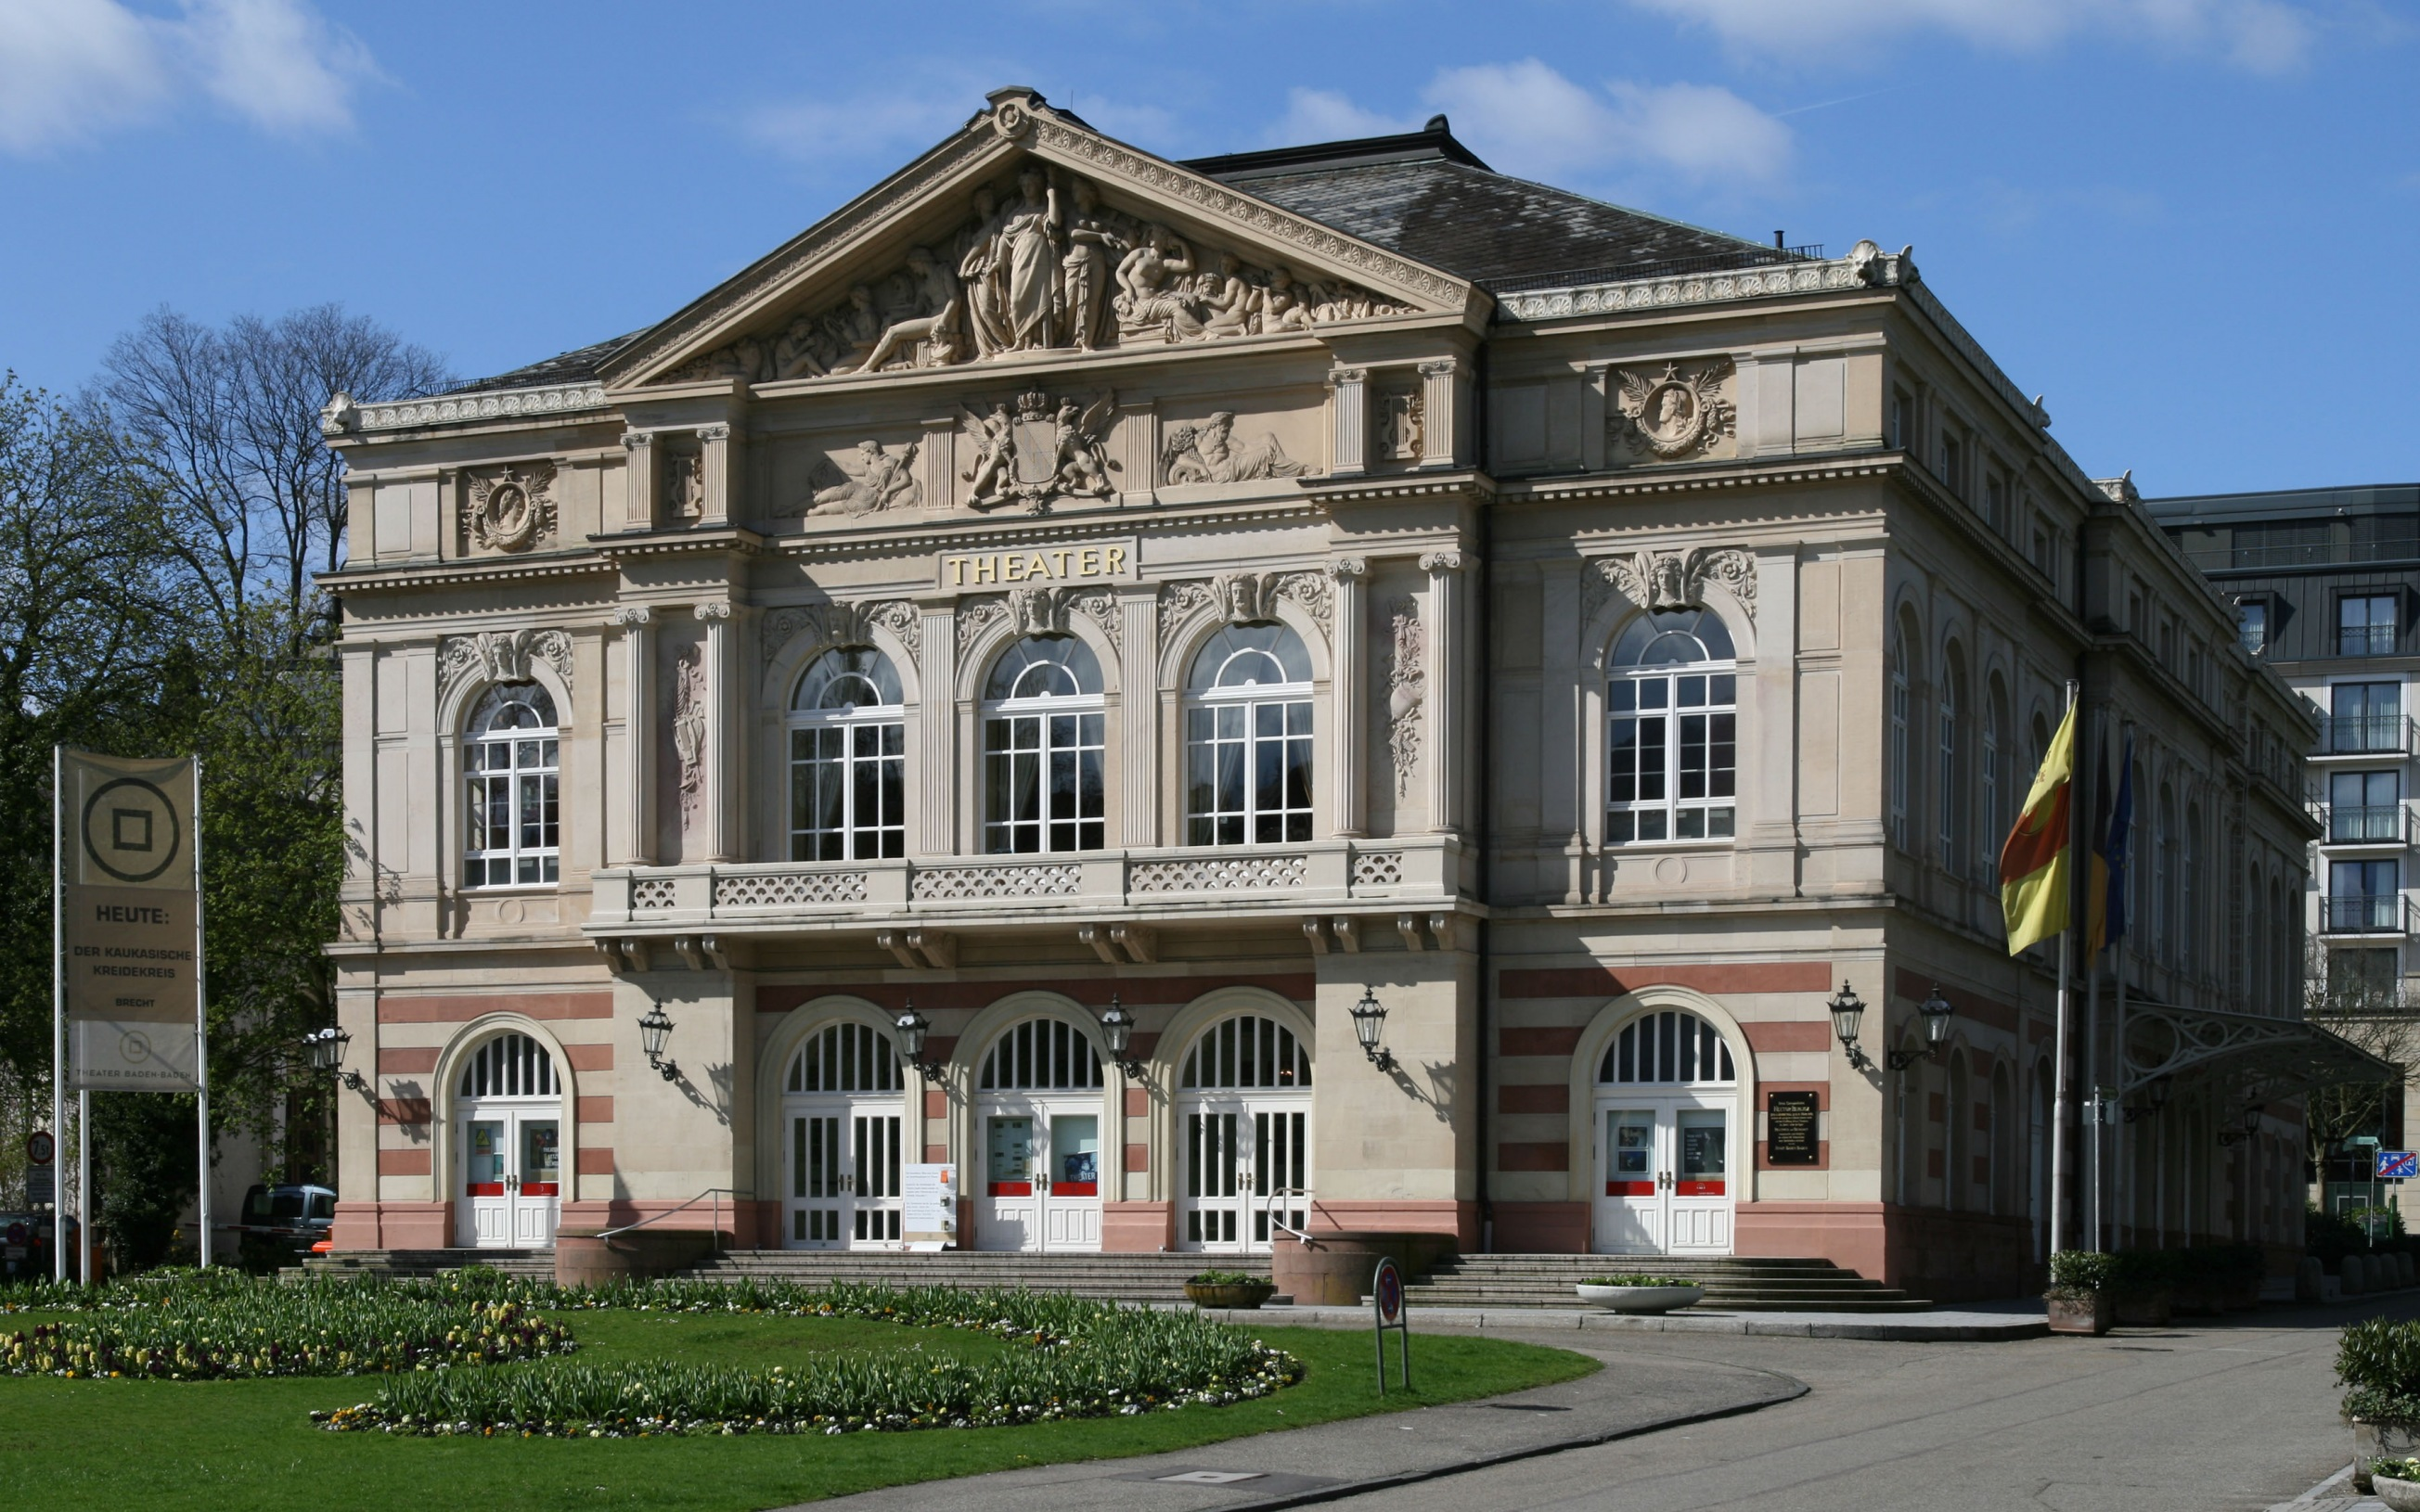 The Theater in Baden-Baden, Germany.